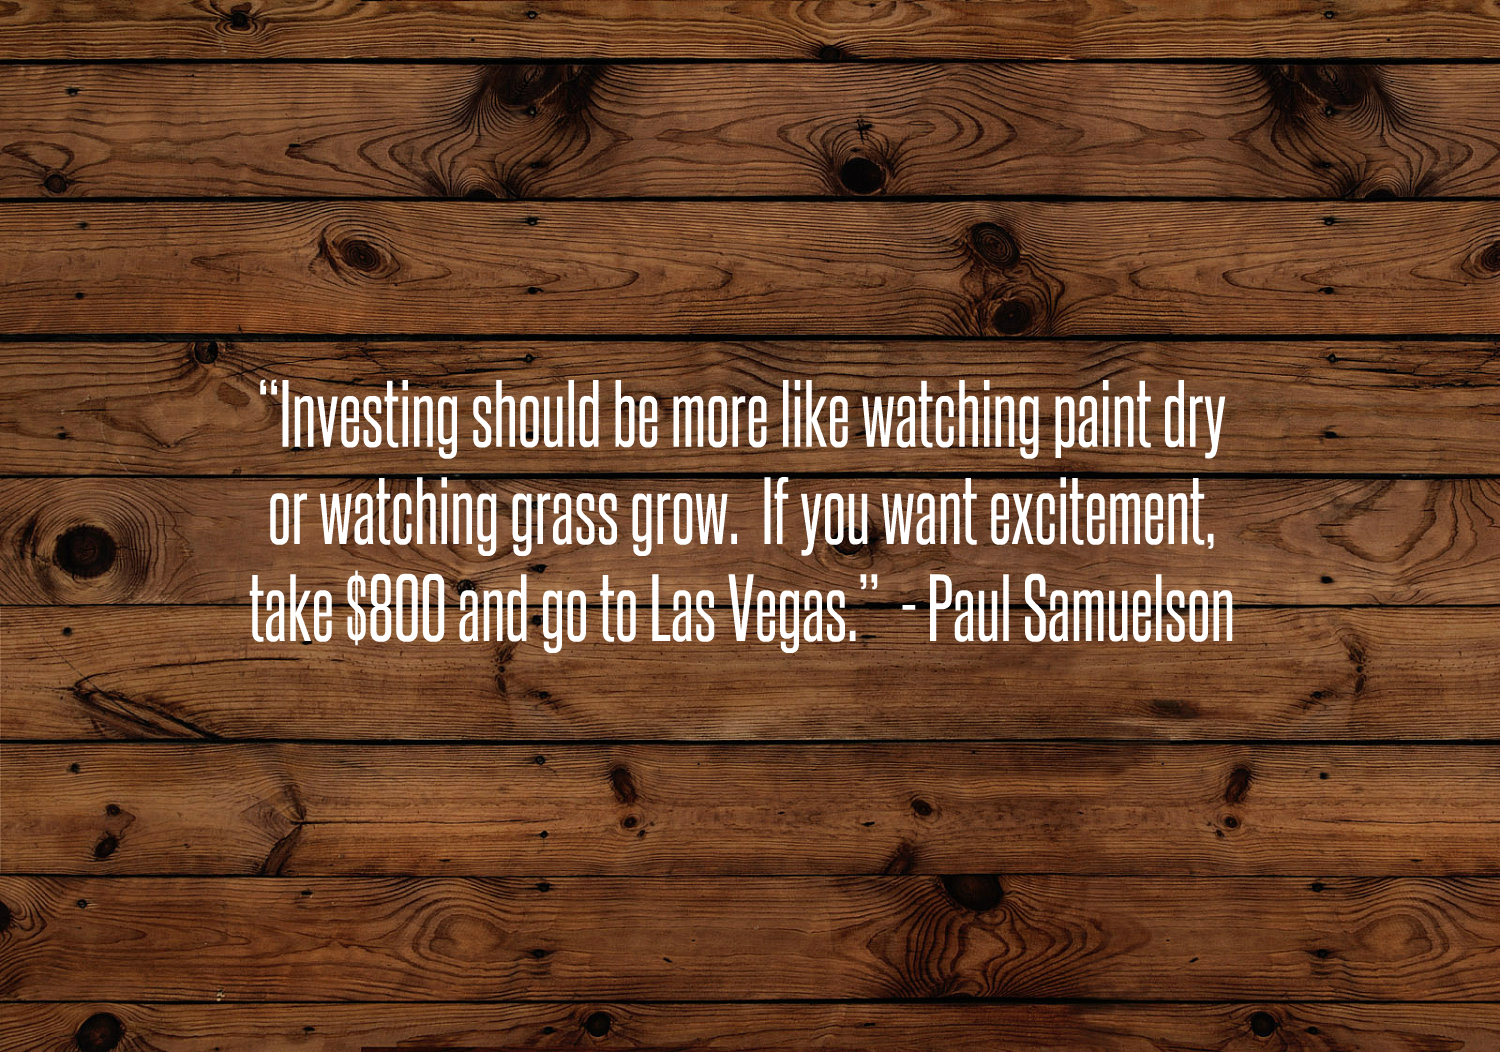 Quote - Paul Samuelson.jpg